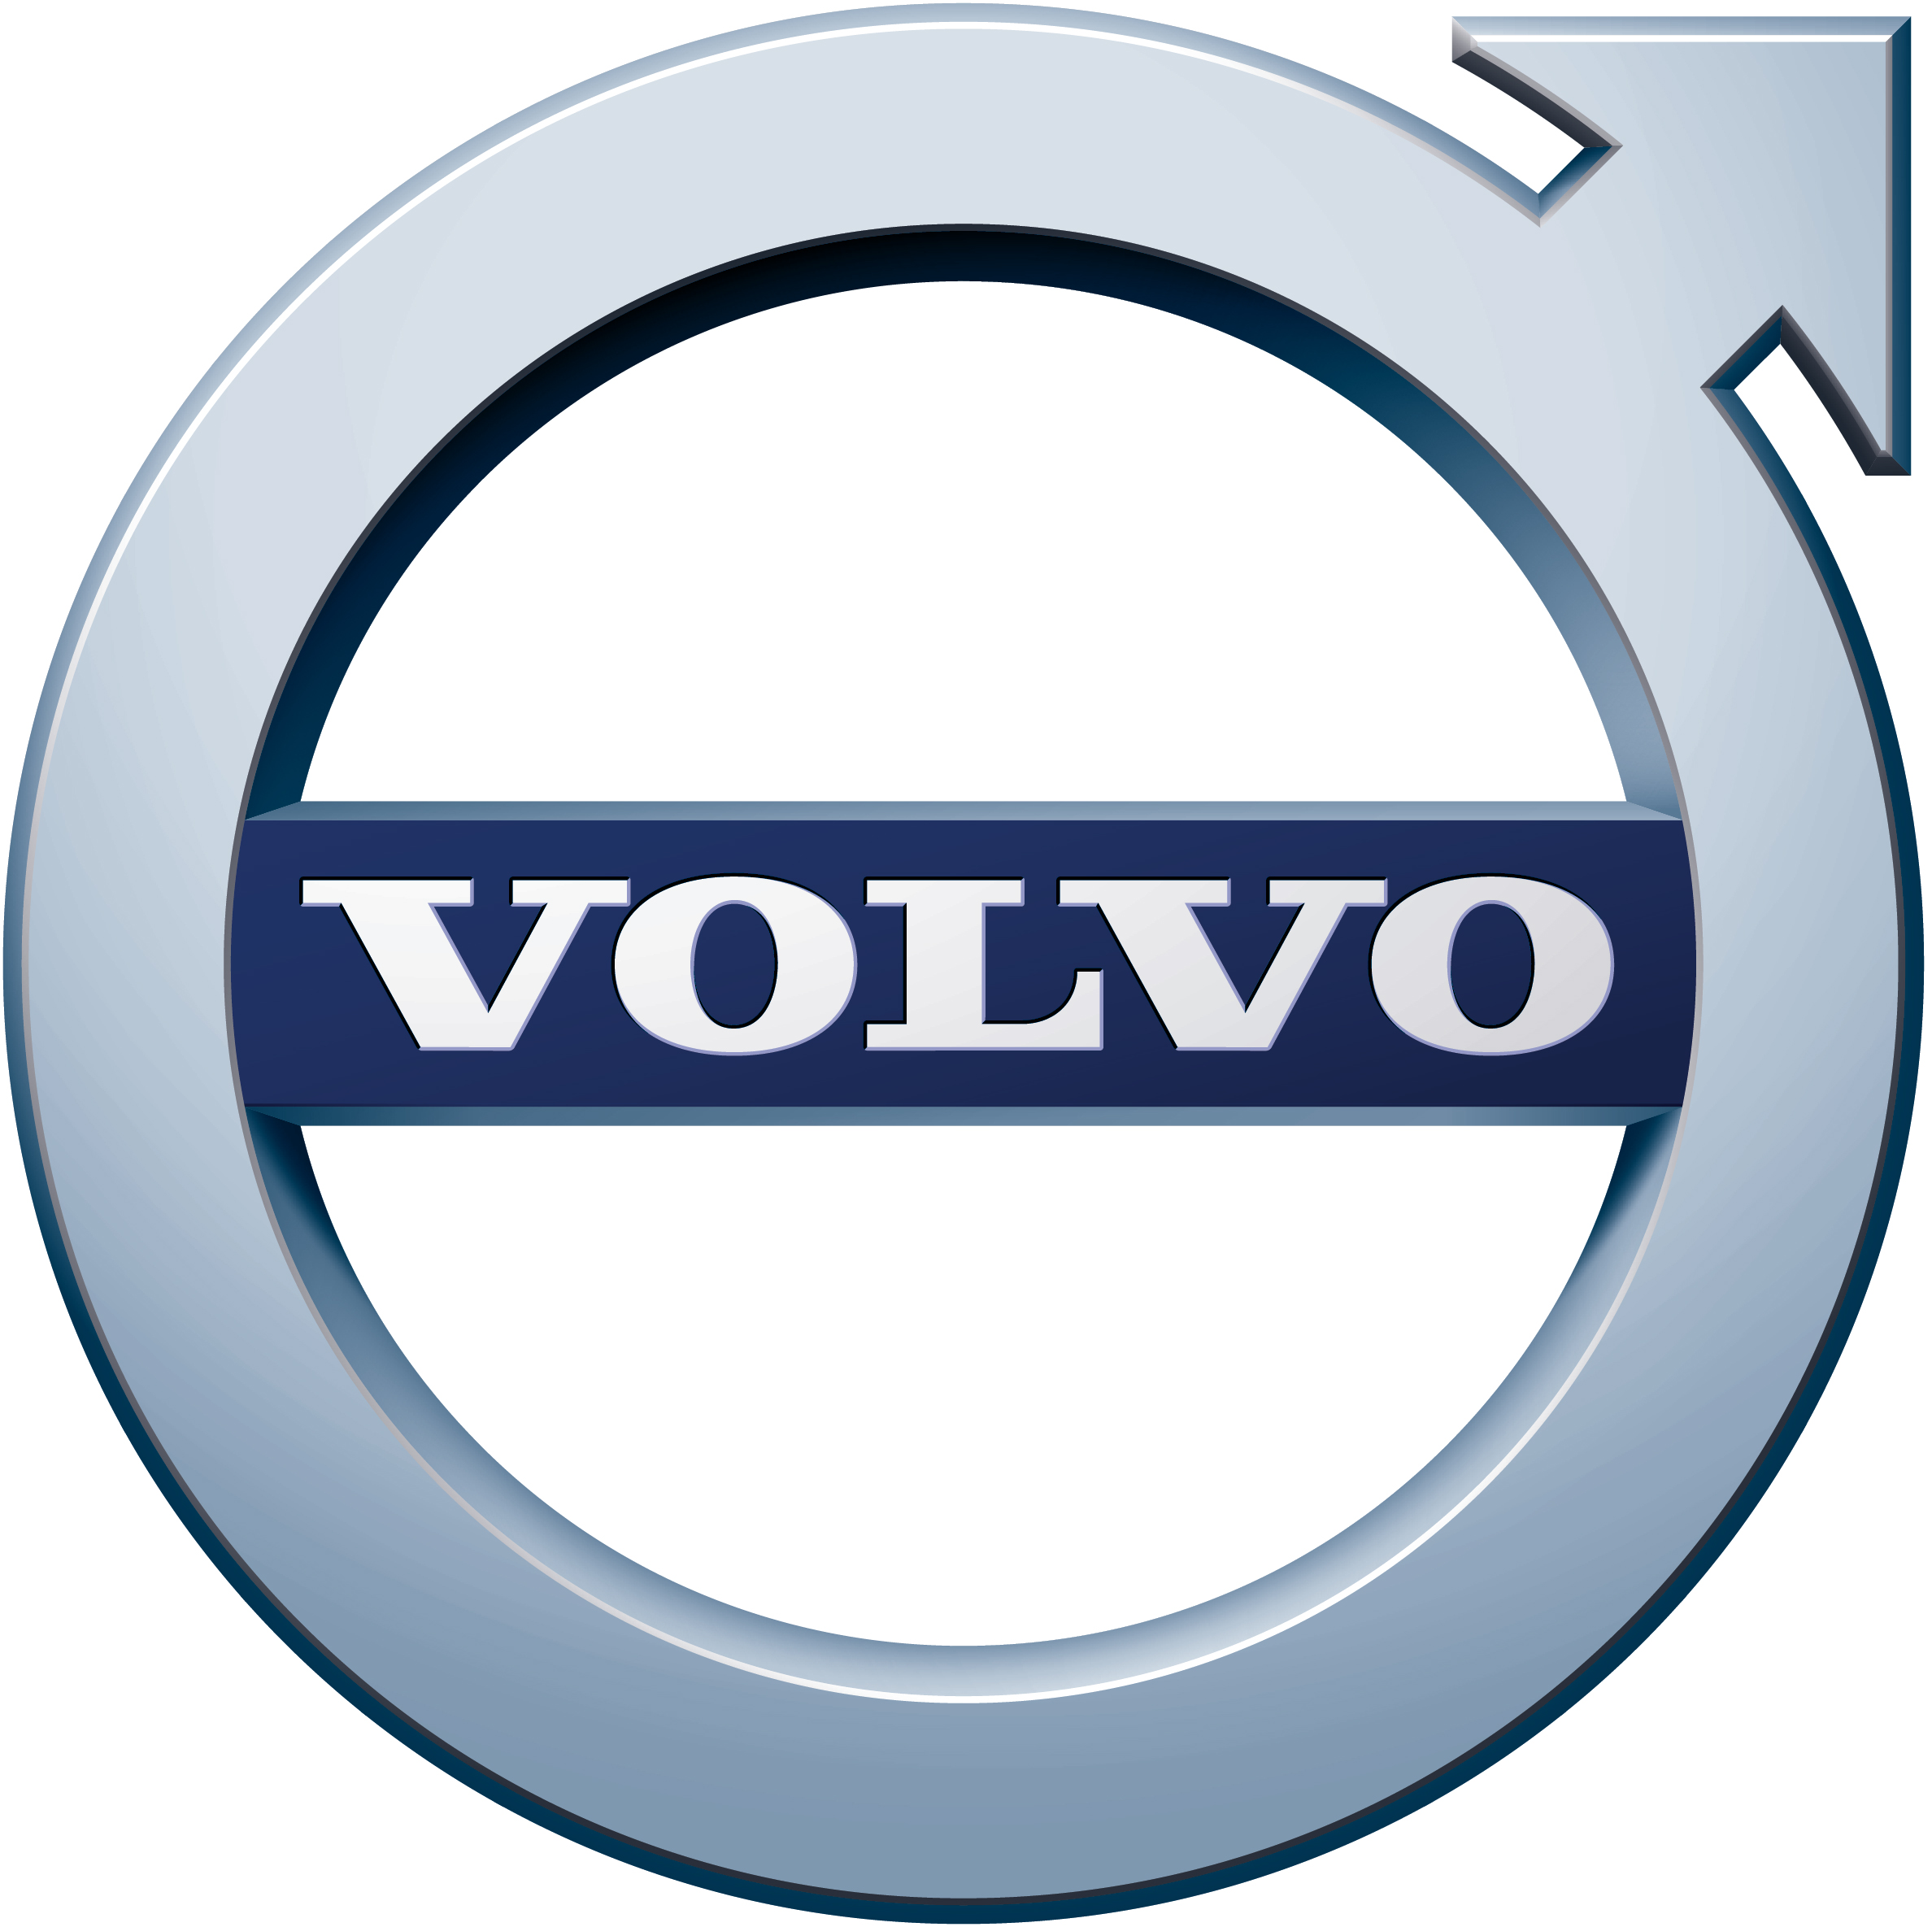 151245_Volvo_Logos_-_Iron_Mark_PMS_2014.jpg